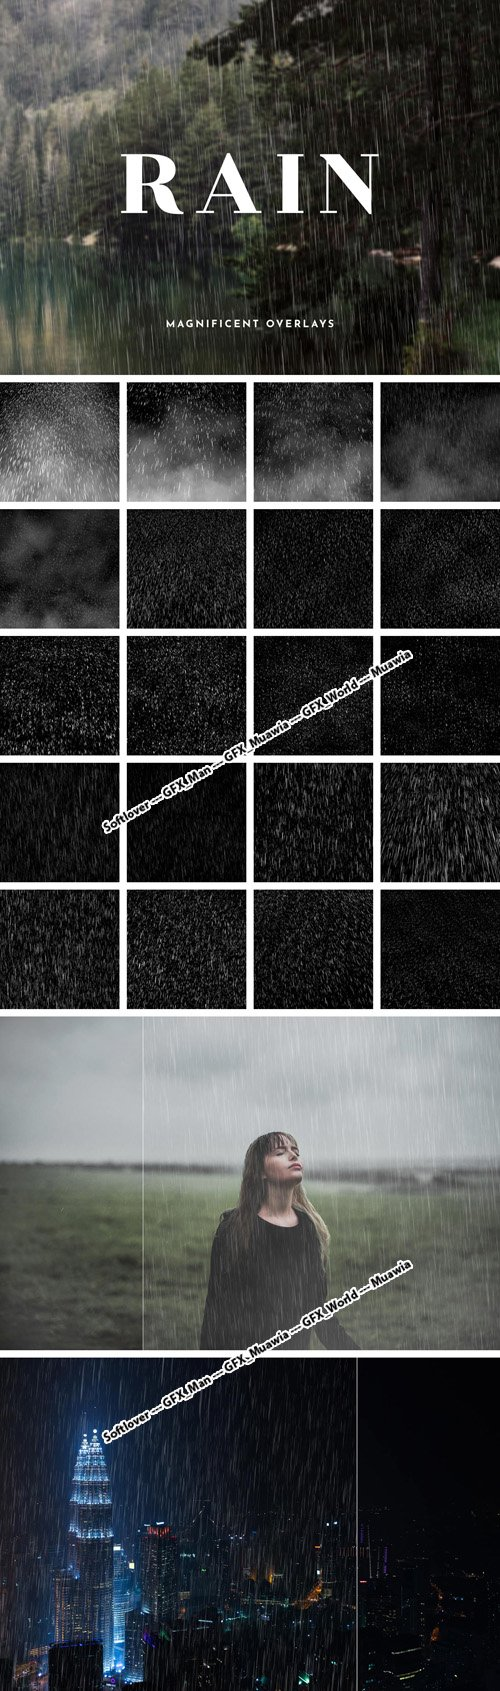 20 Magnificent Overlays - Rain